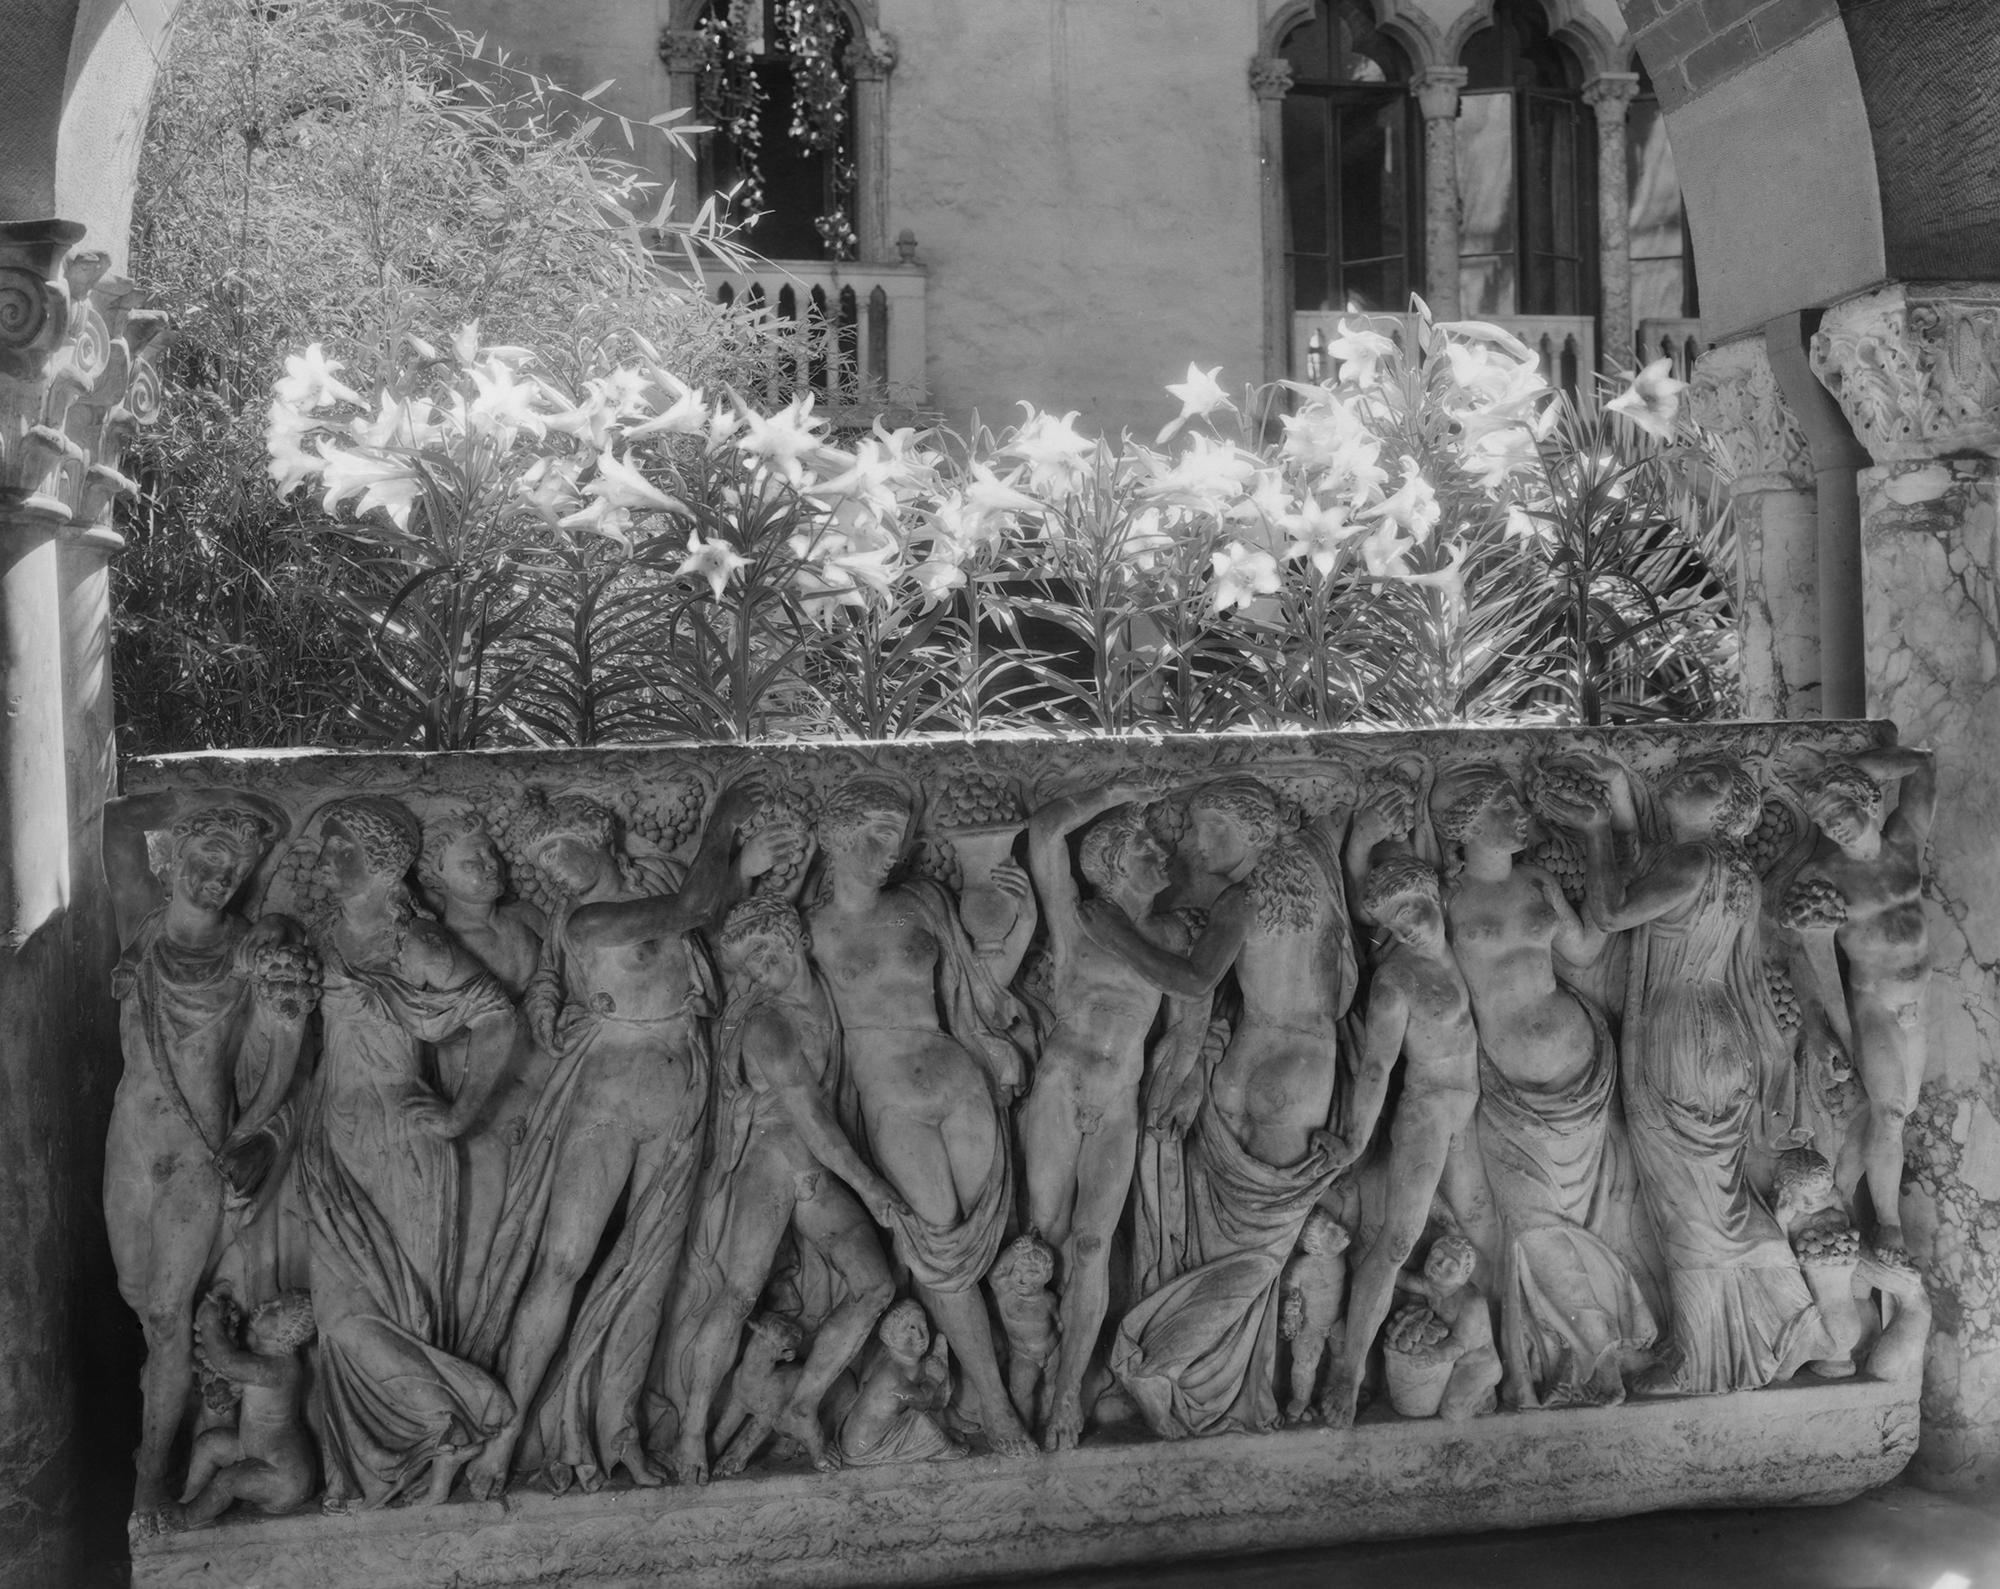 Another angle of the sarcophagus in black and white